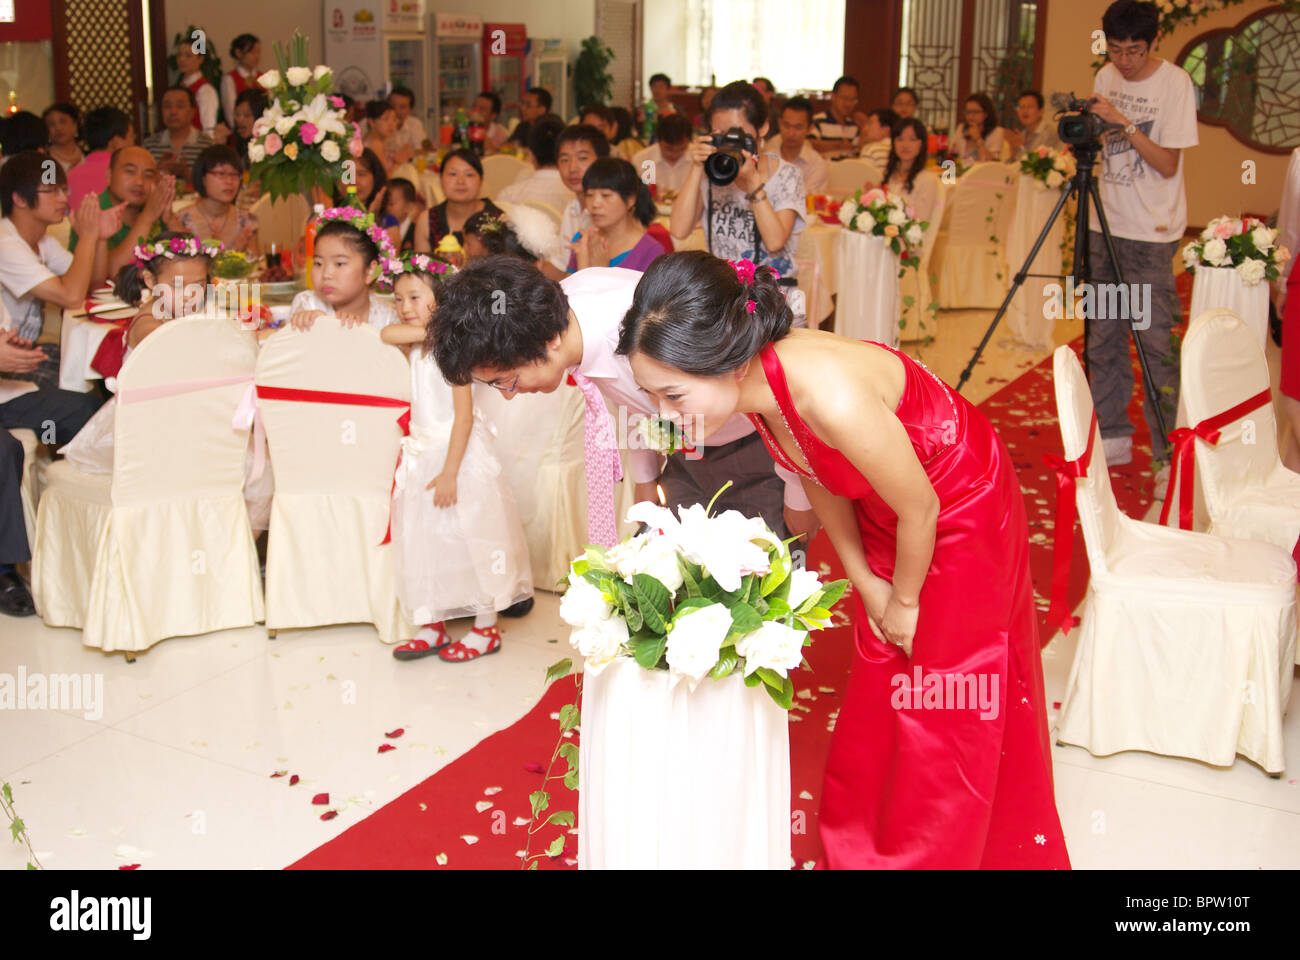 Chinese Wedding Banquet Stock Photos & Chinese Wedding Banquet Stock ...